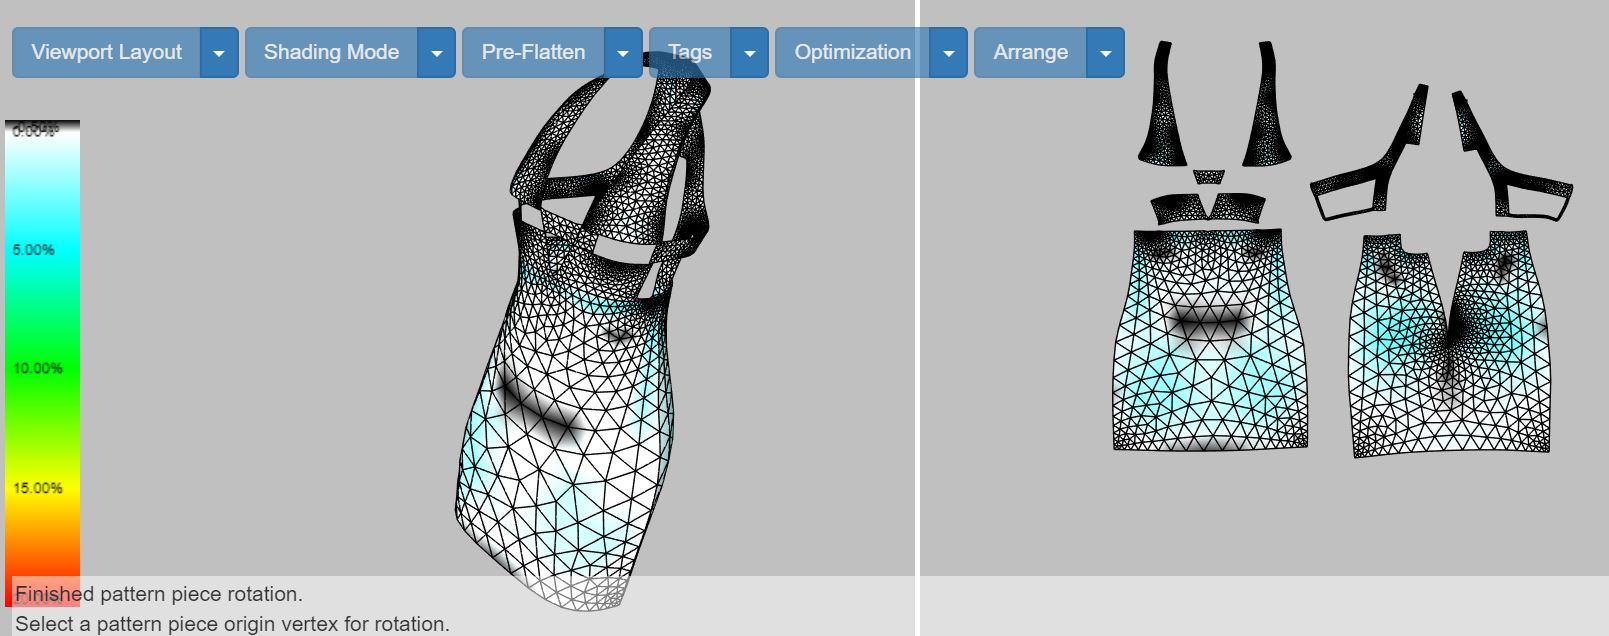 Once the items are purchased, the same 3D CAD model used to the create the sales and marketing materials is rapidly converted to 2D patterns and assembly instructions for manufacturing.  Click on the image above to see the process in action.